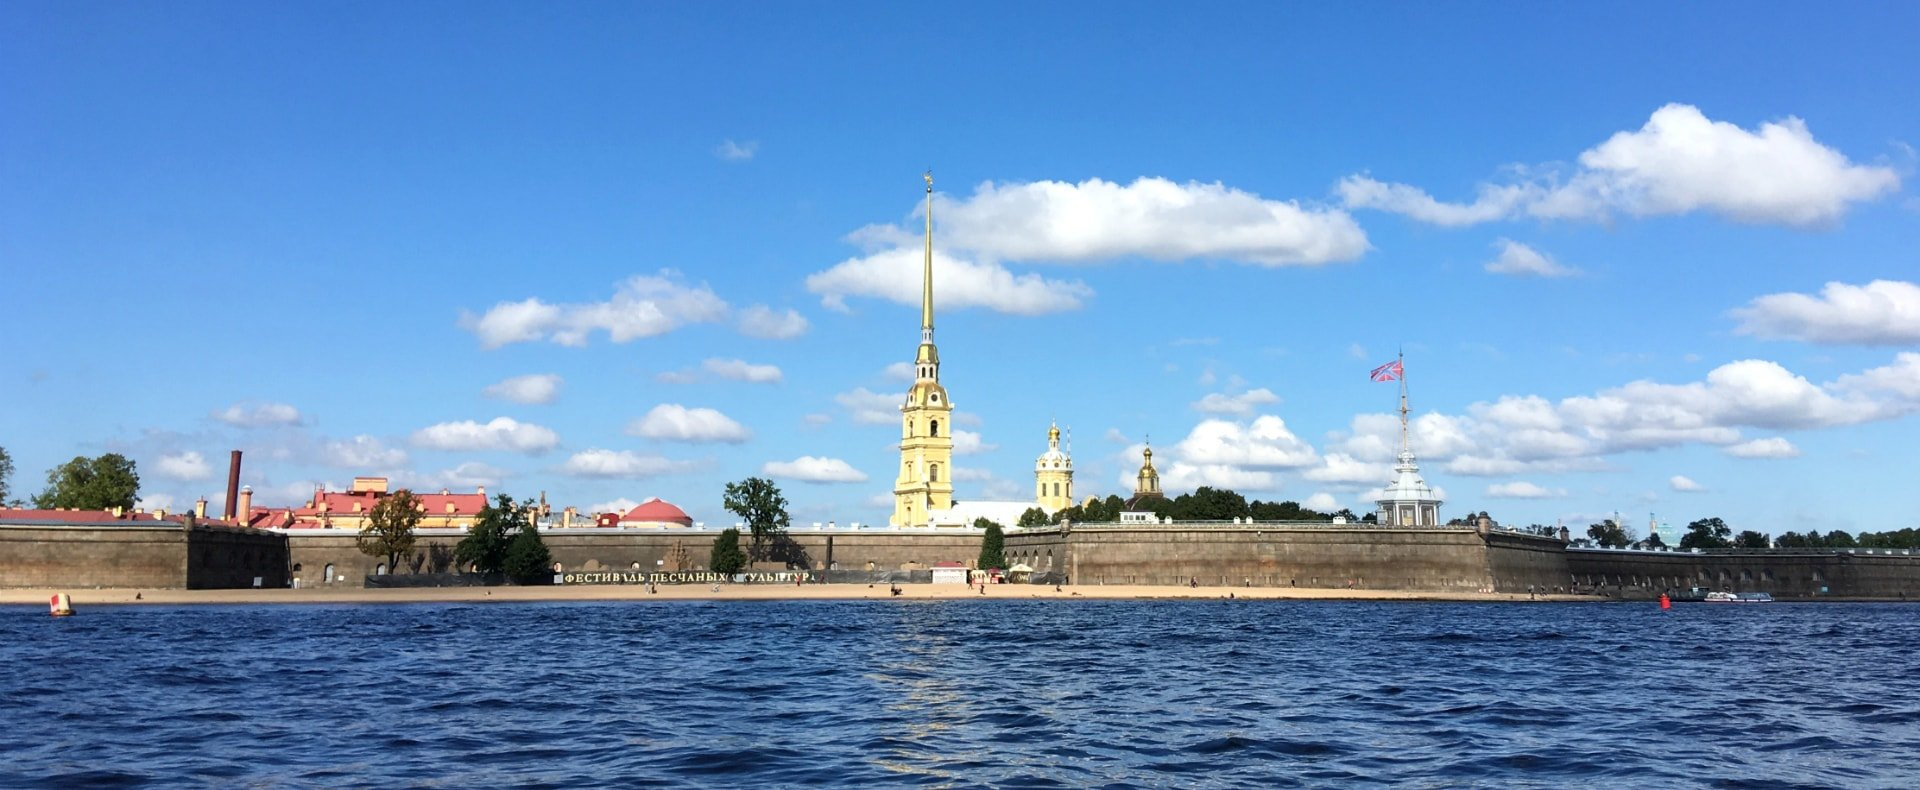 Peter and Paul Fortress, Saint Petersburg, Russia Gallery